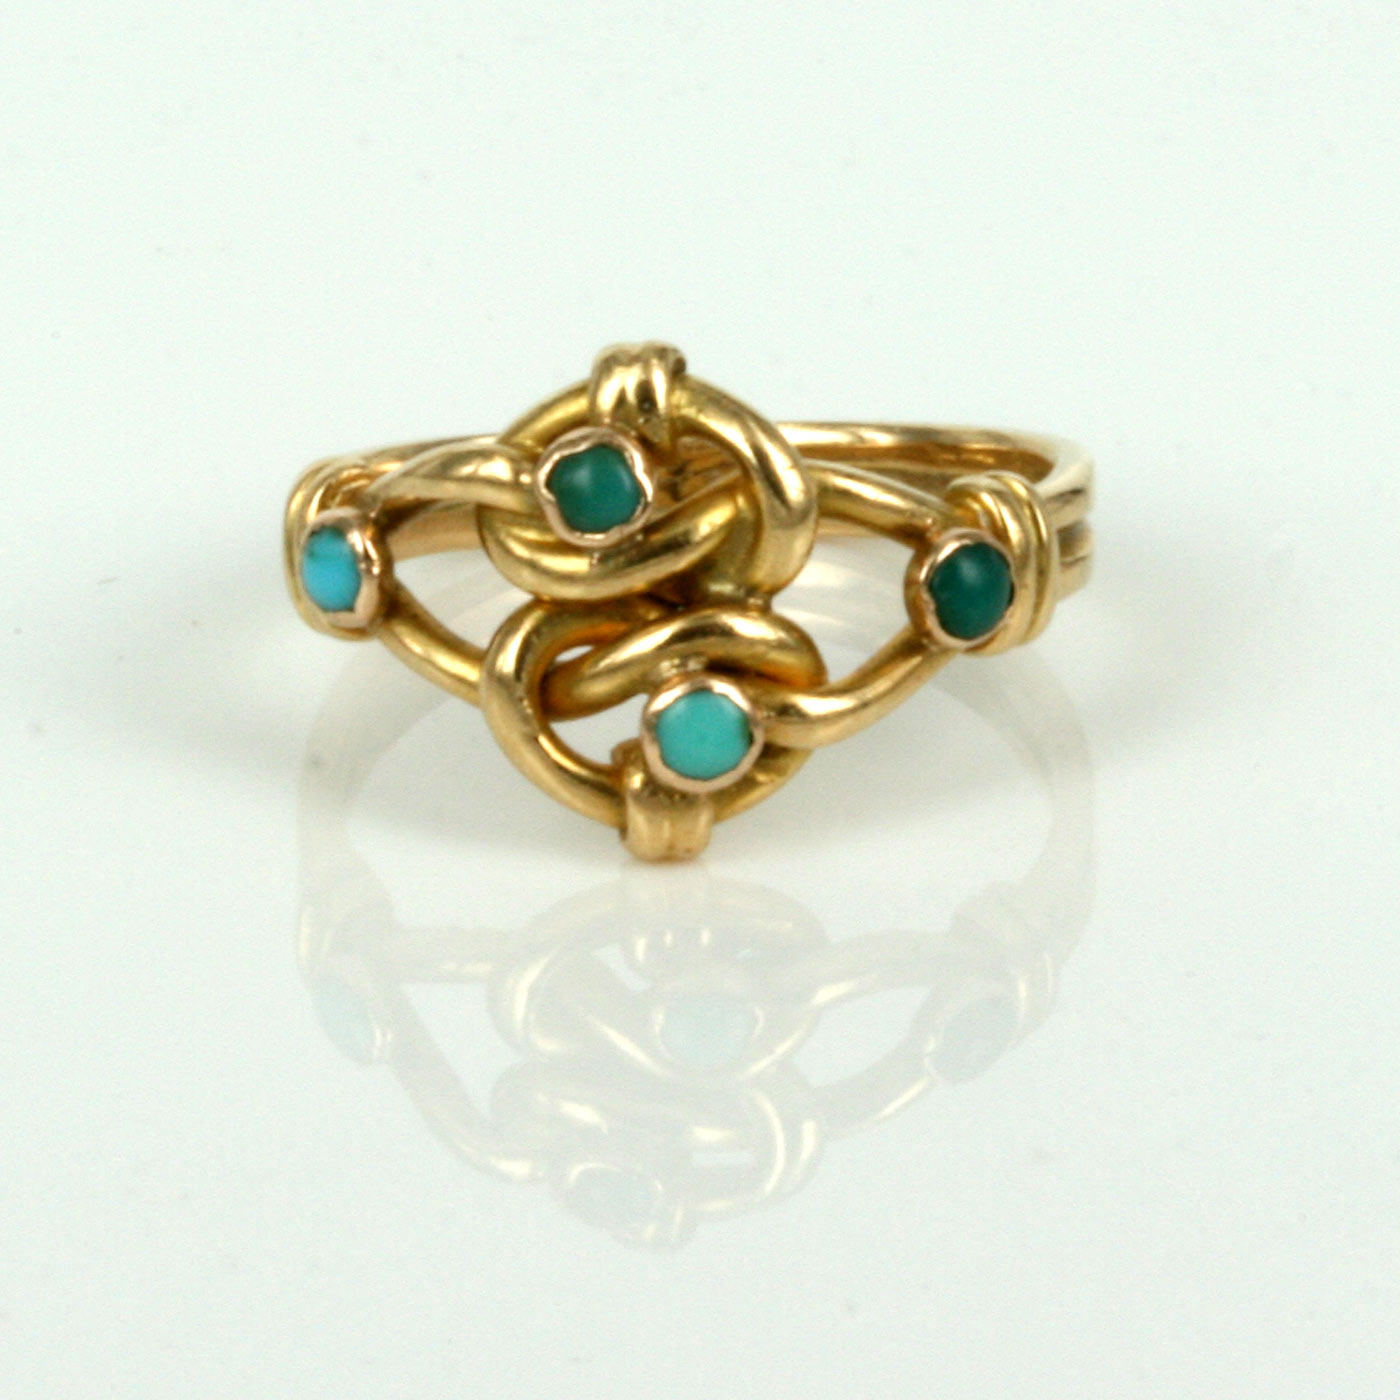 Buy Antique Art Nouveau turquoise ring made in 1900. Sold ...